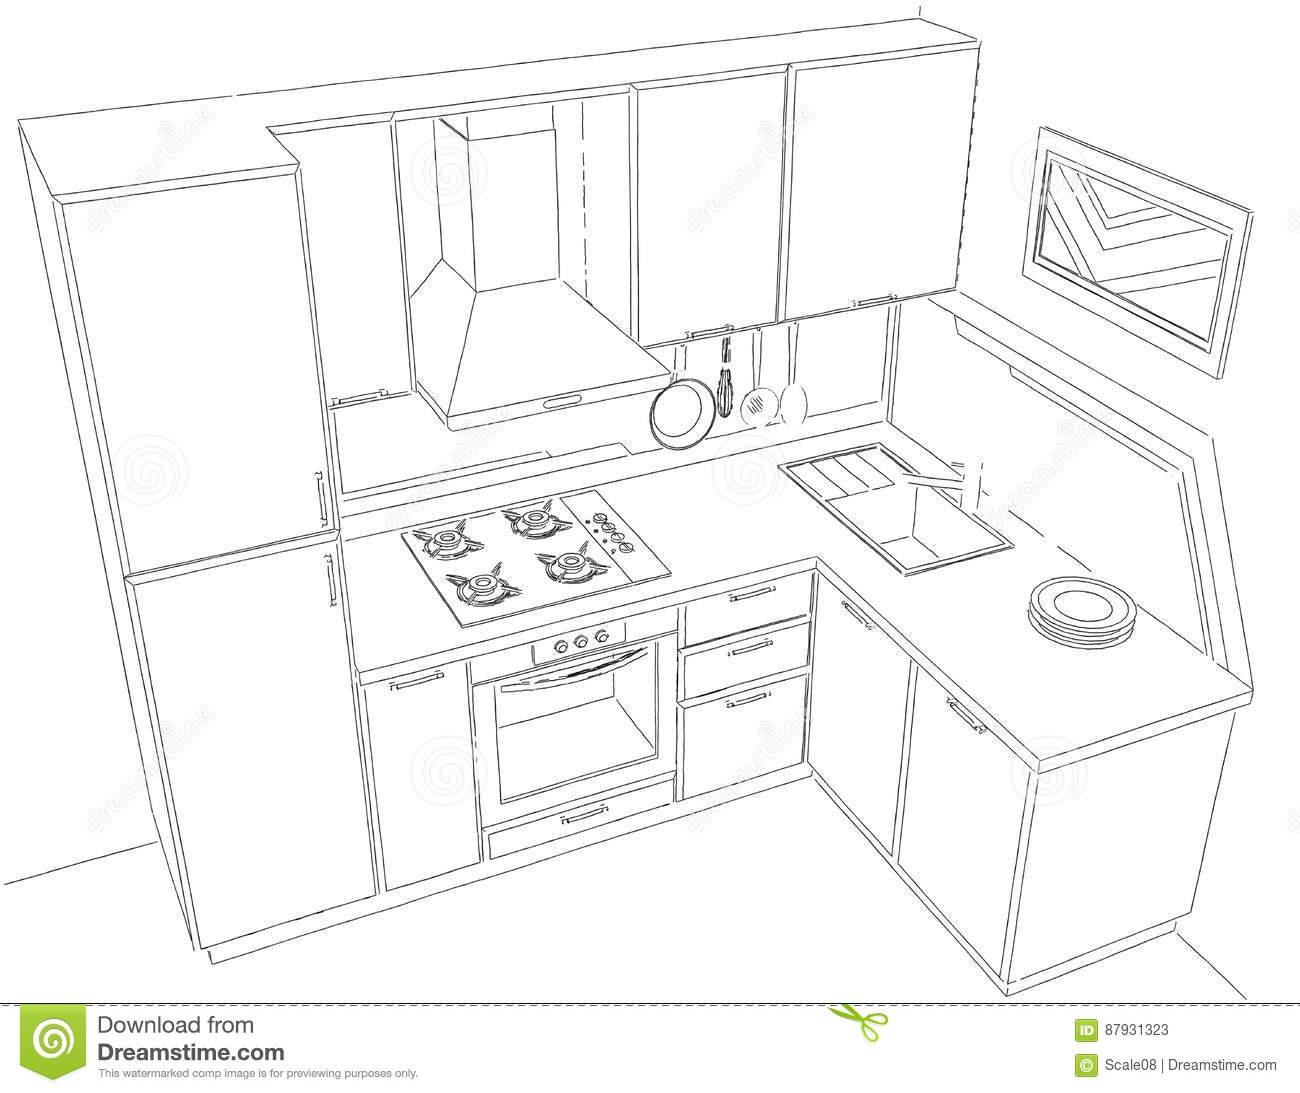 Kitchen perspective drawing - Black Corner Drawing Illustration Interior Kitchen Modern Outline Pencil Perspective